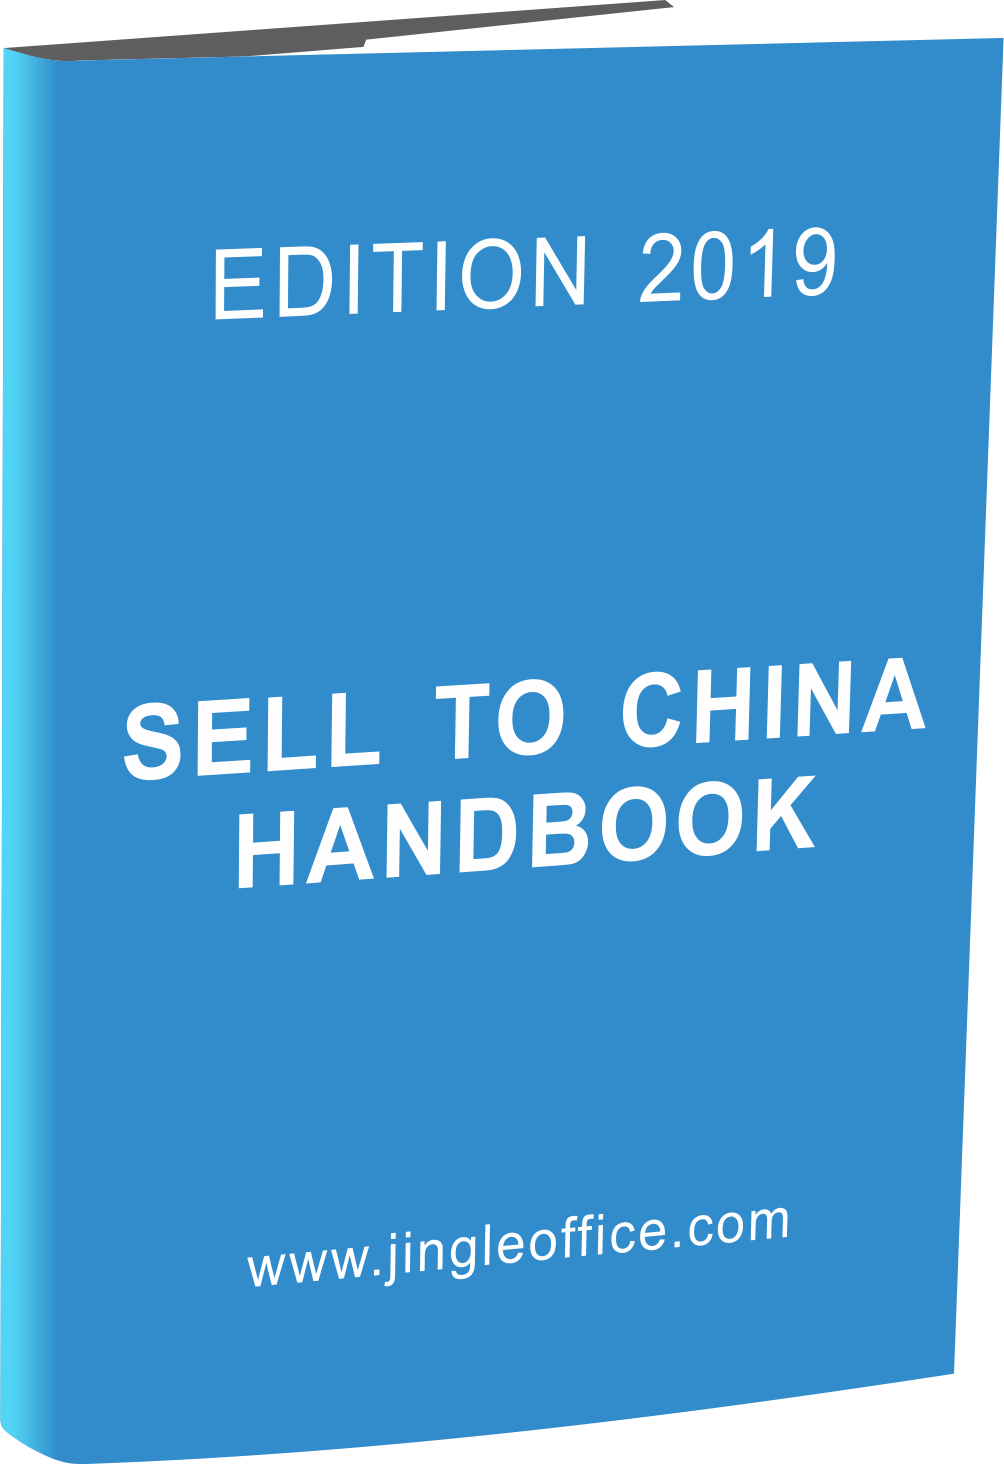 Sell to China Handbook